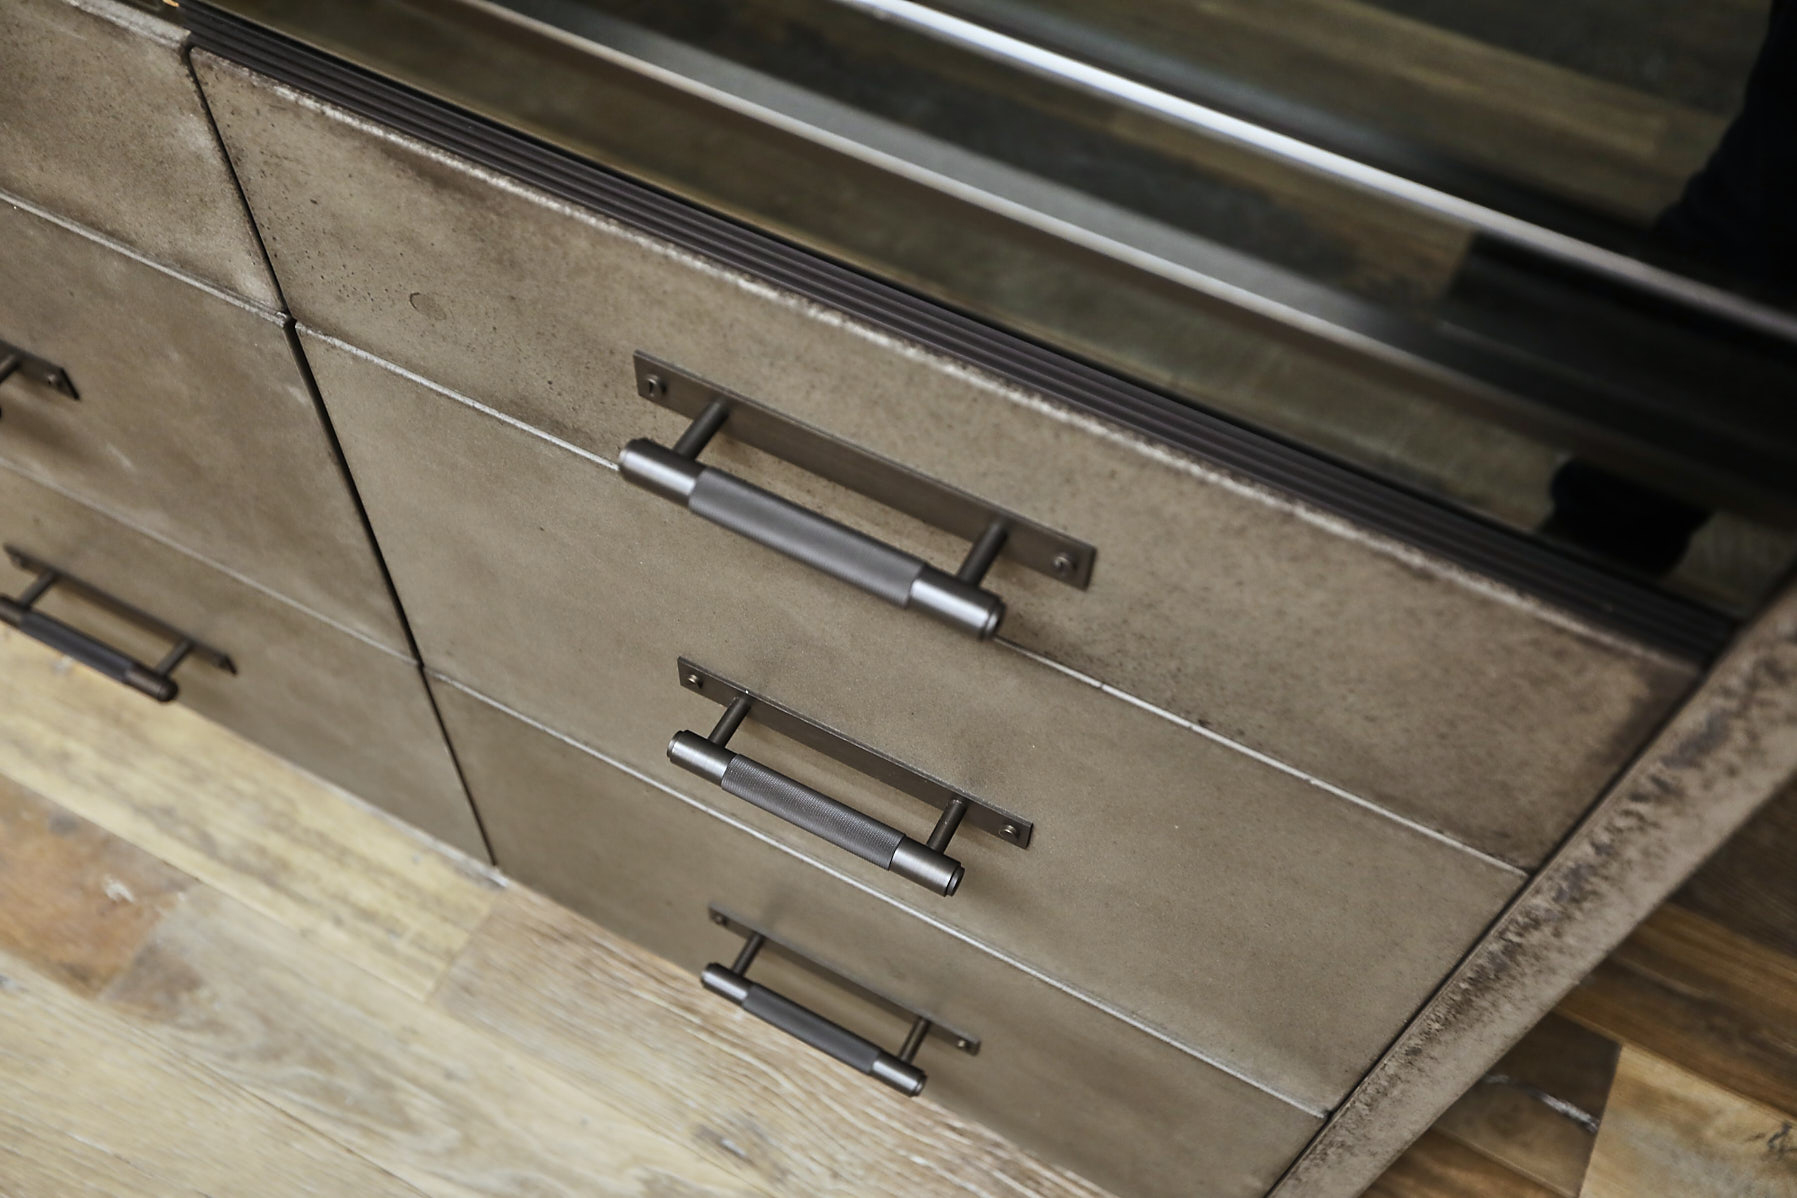 Solid concrete drawer fronts with buster and punch pull handles